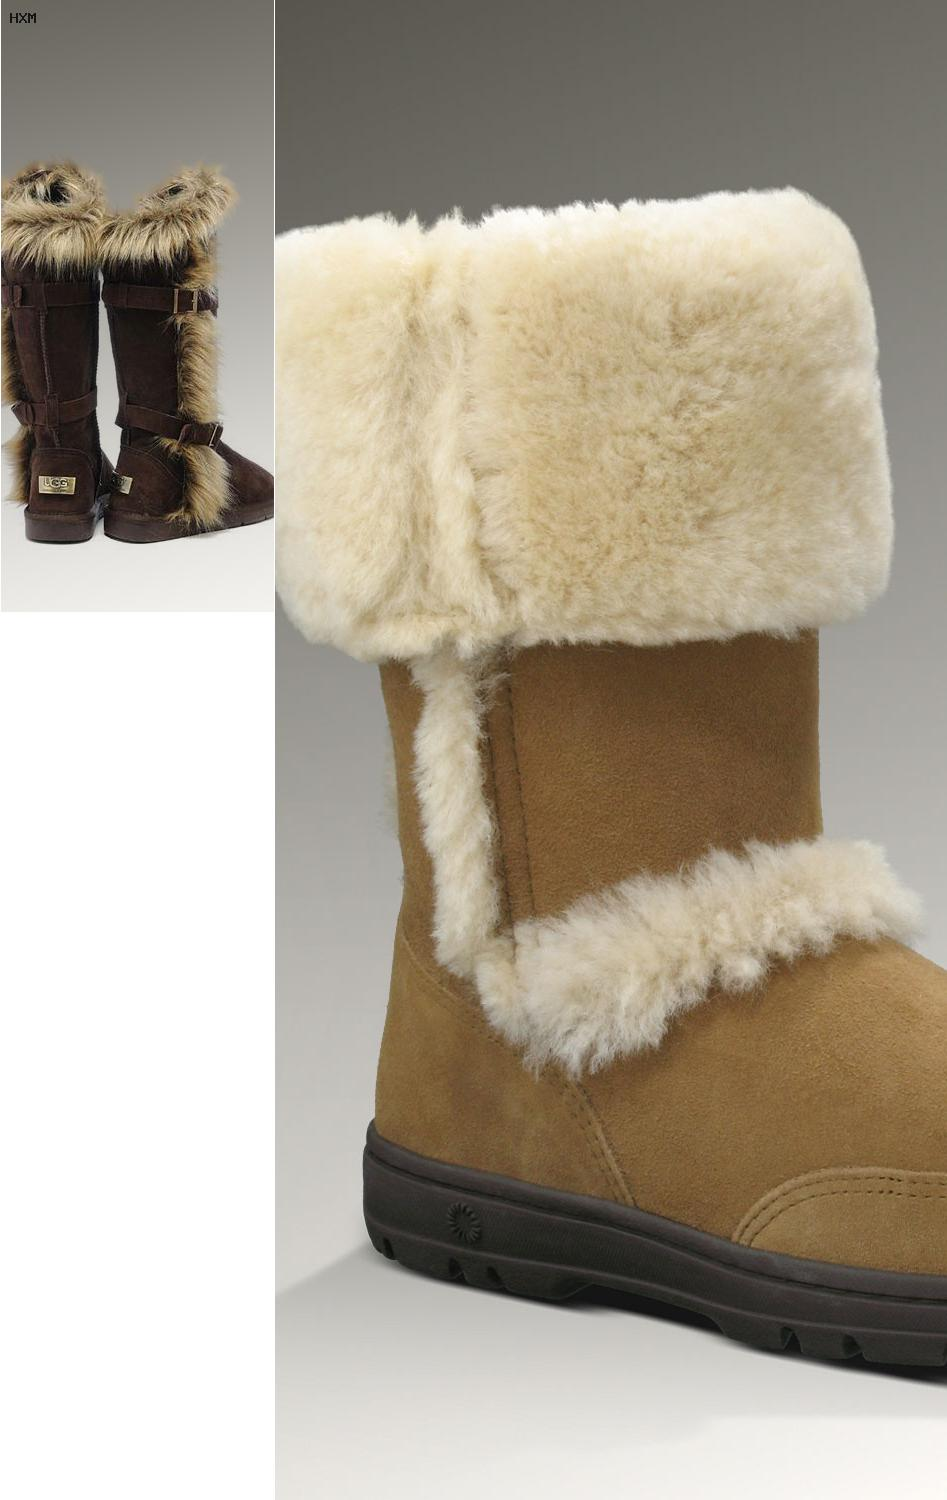 b6f71aa9d92 ugg australia women s over the knee bailey button boots